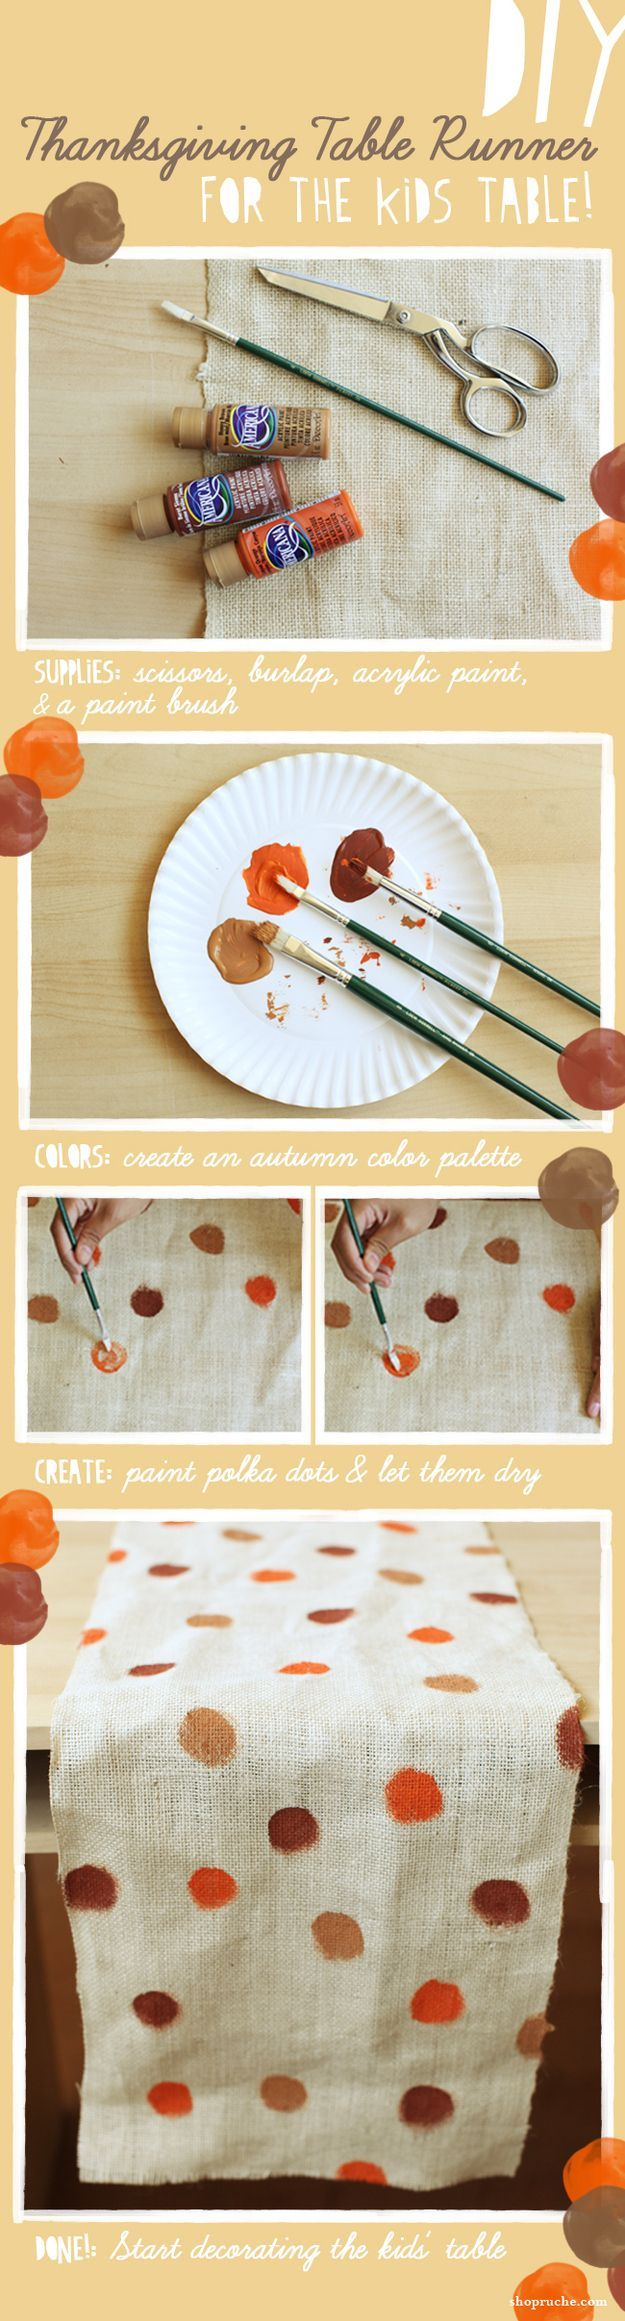 Diy thanksgiving table runner pictures photos and images for Easy diy table runner